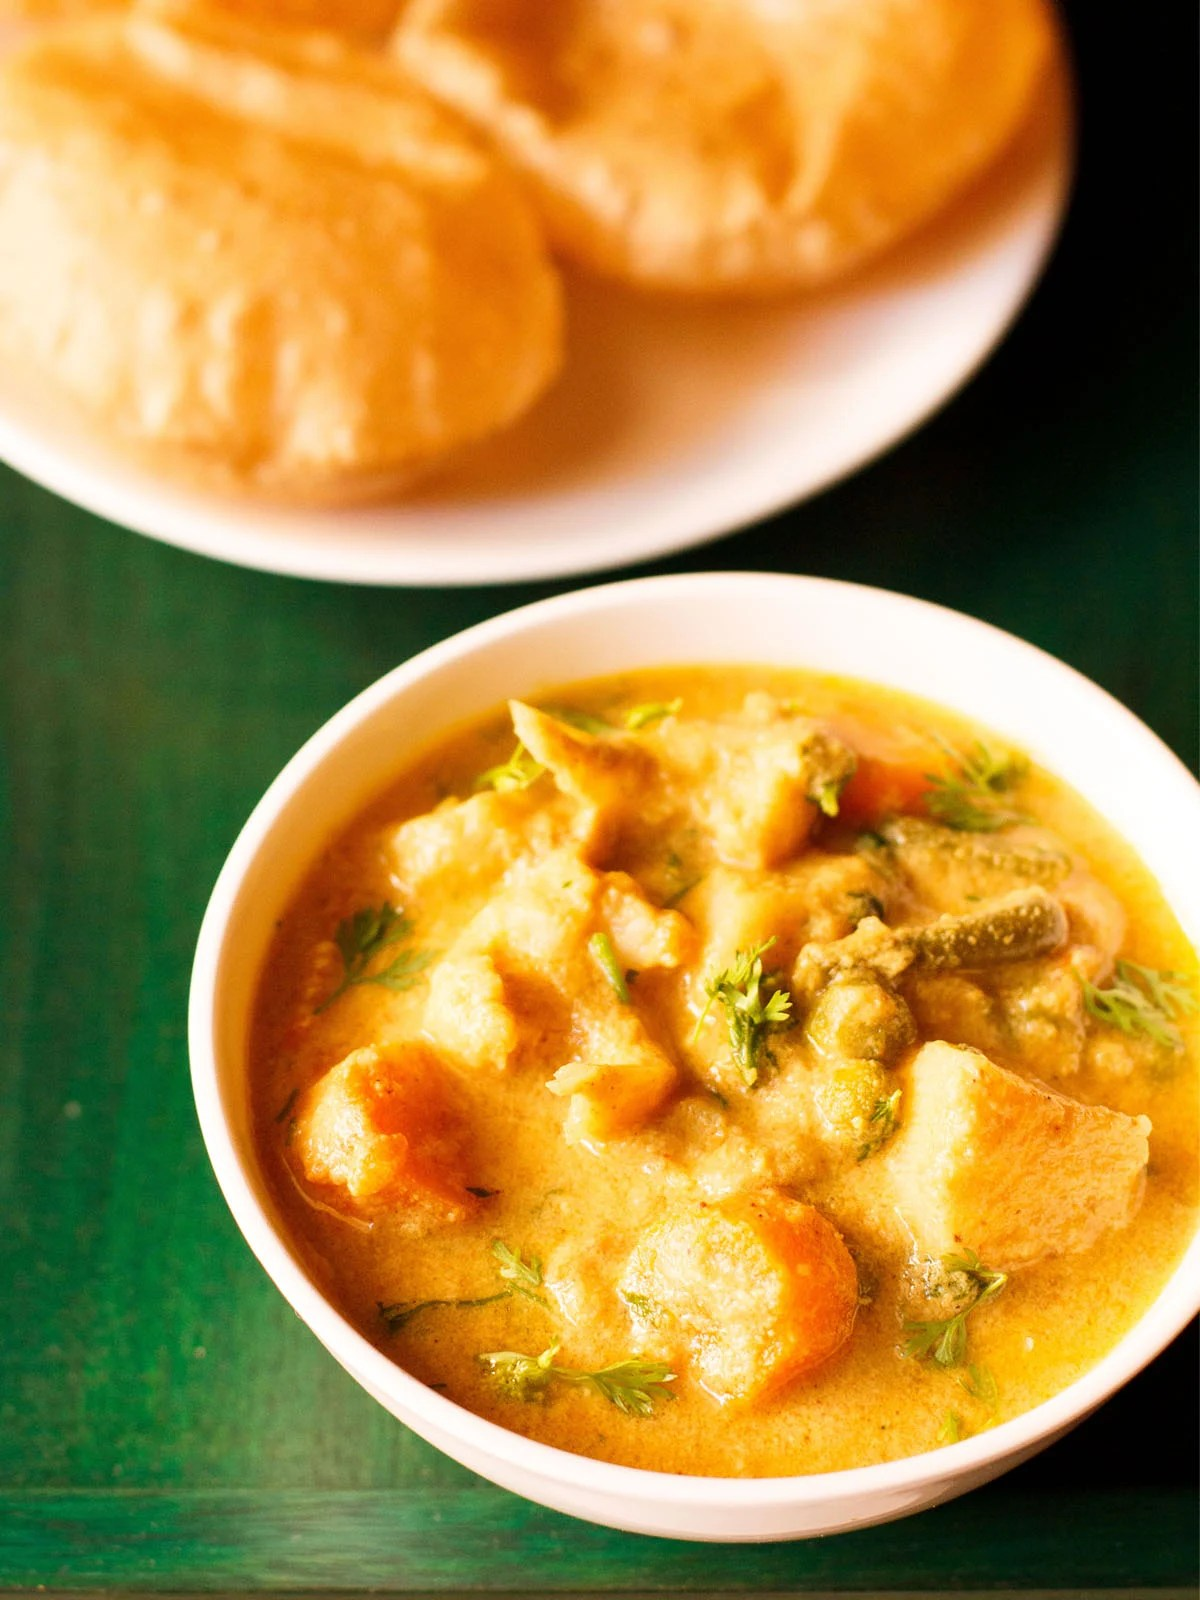 veg kurma in a white bowl on a dark green wooden tray with a side of poori